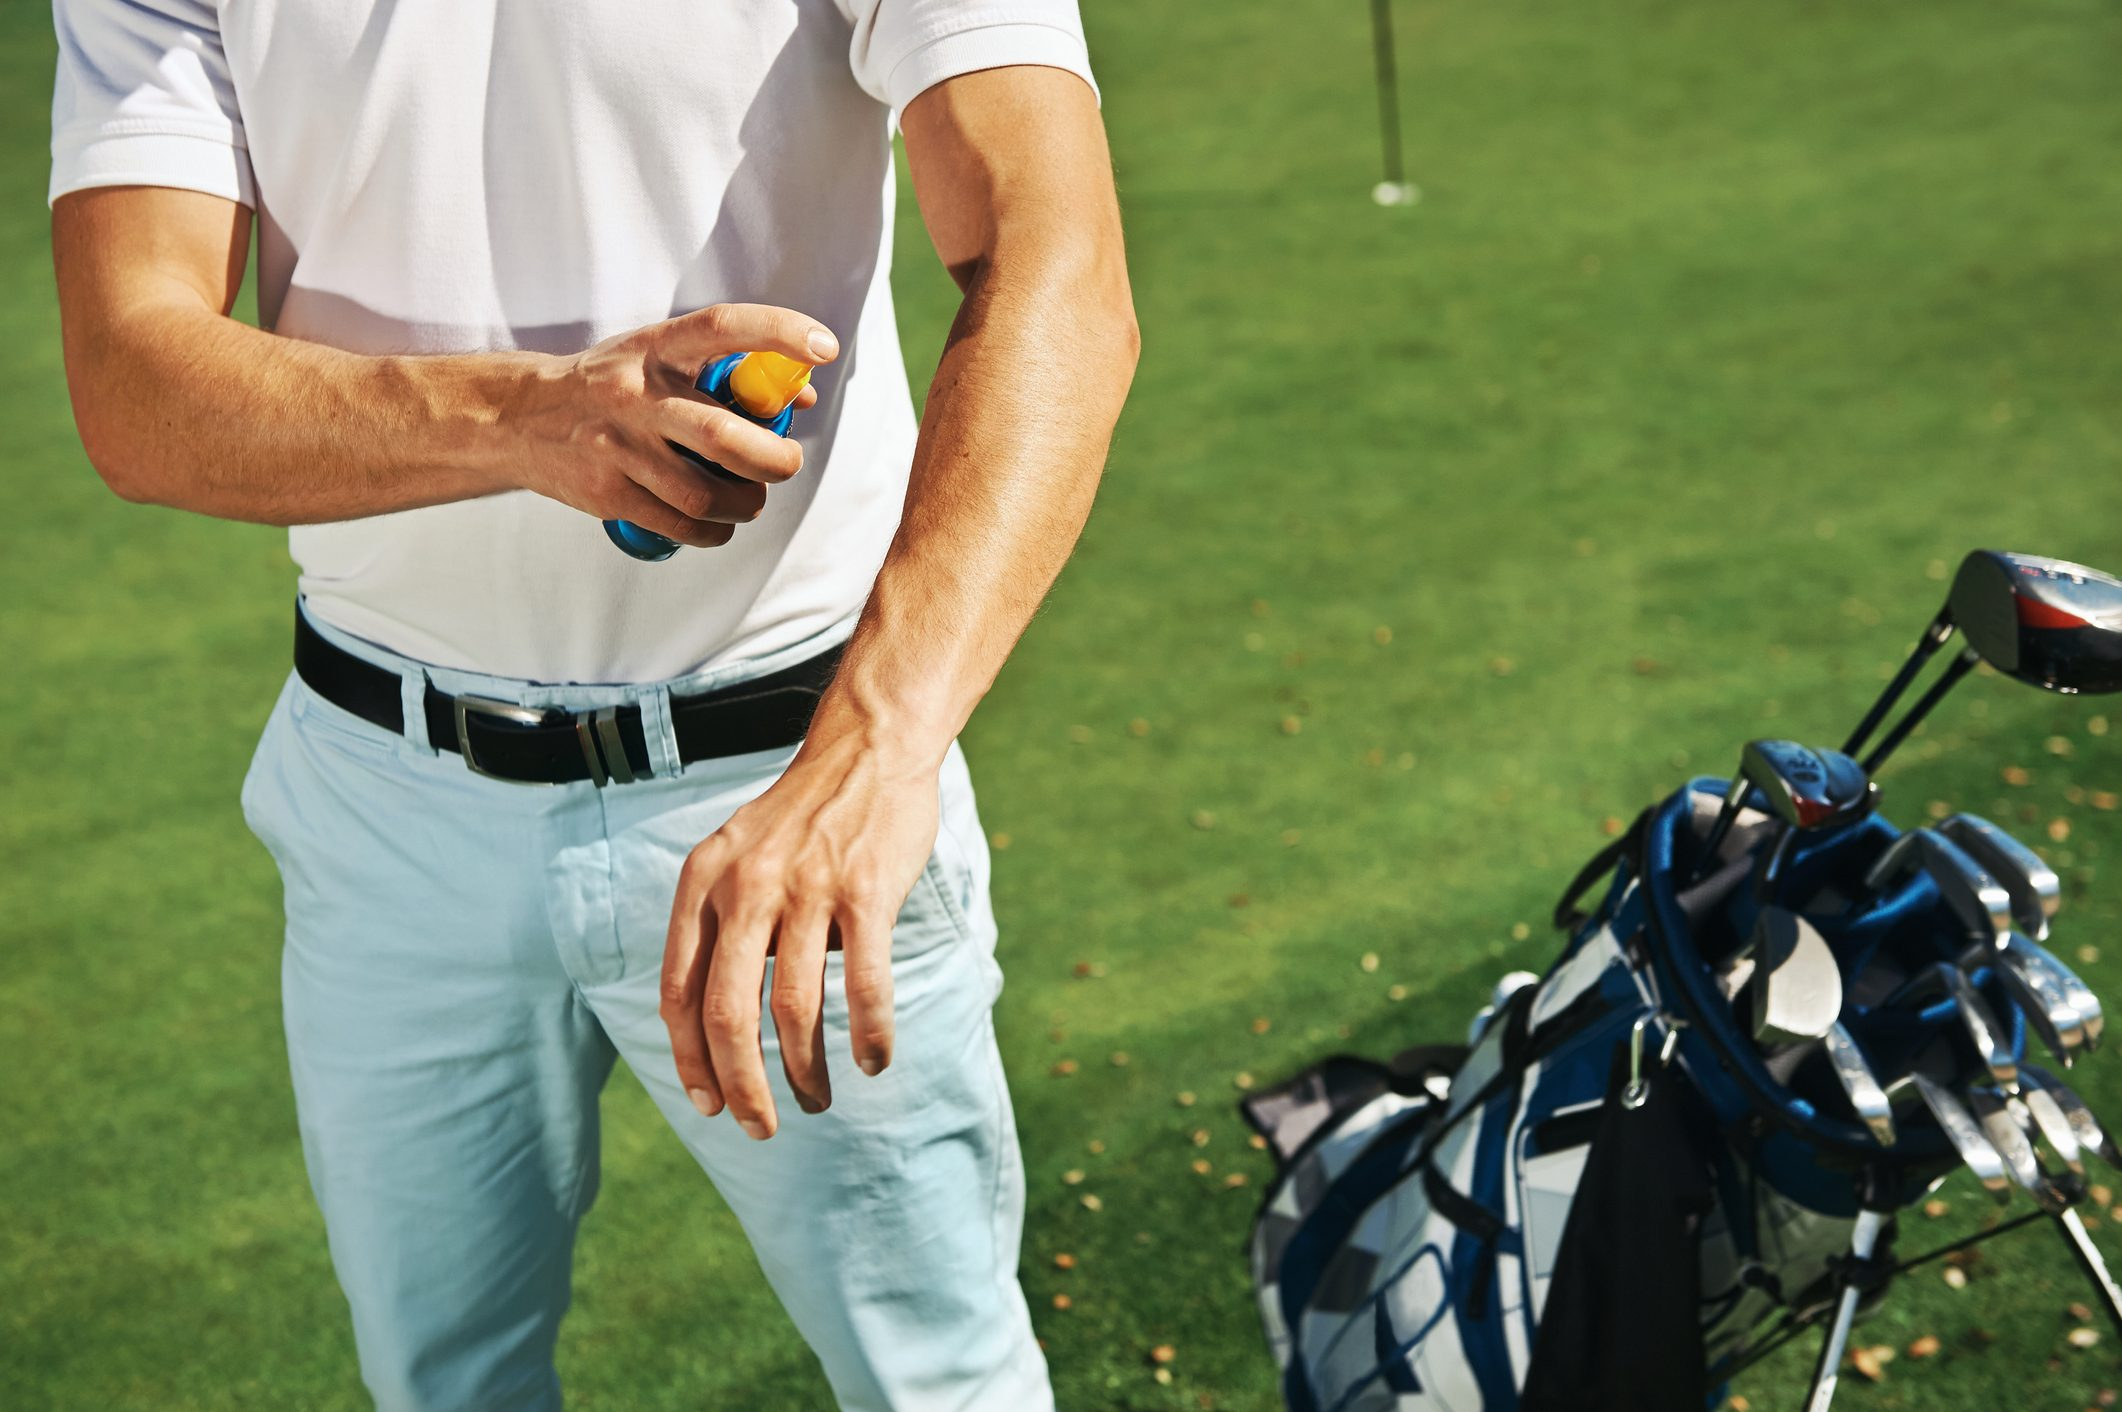 man applying sunscreen while playing golf